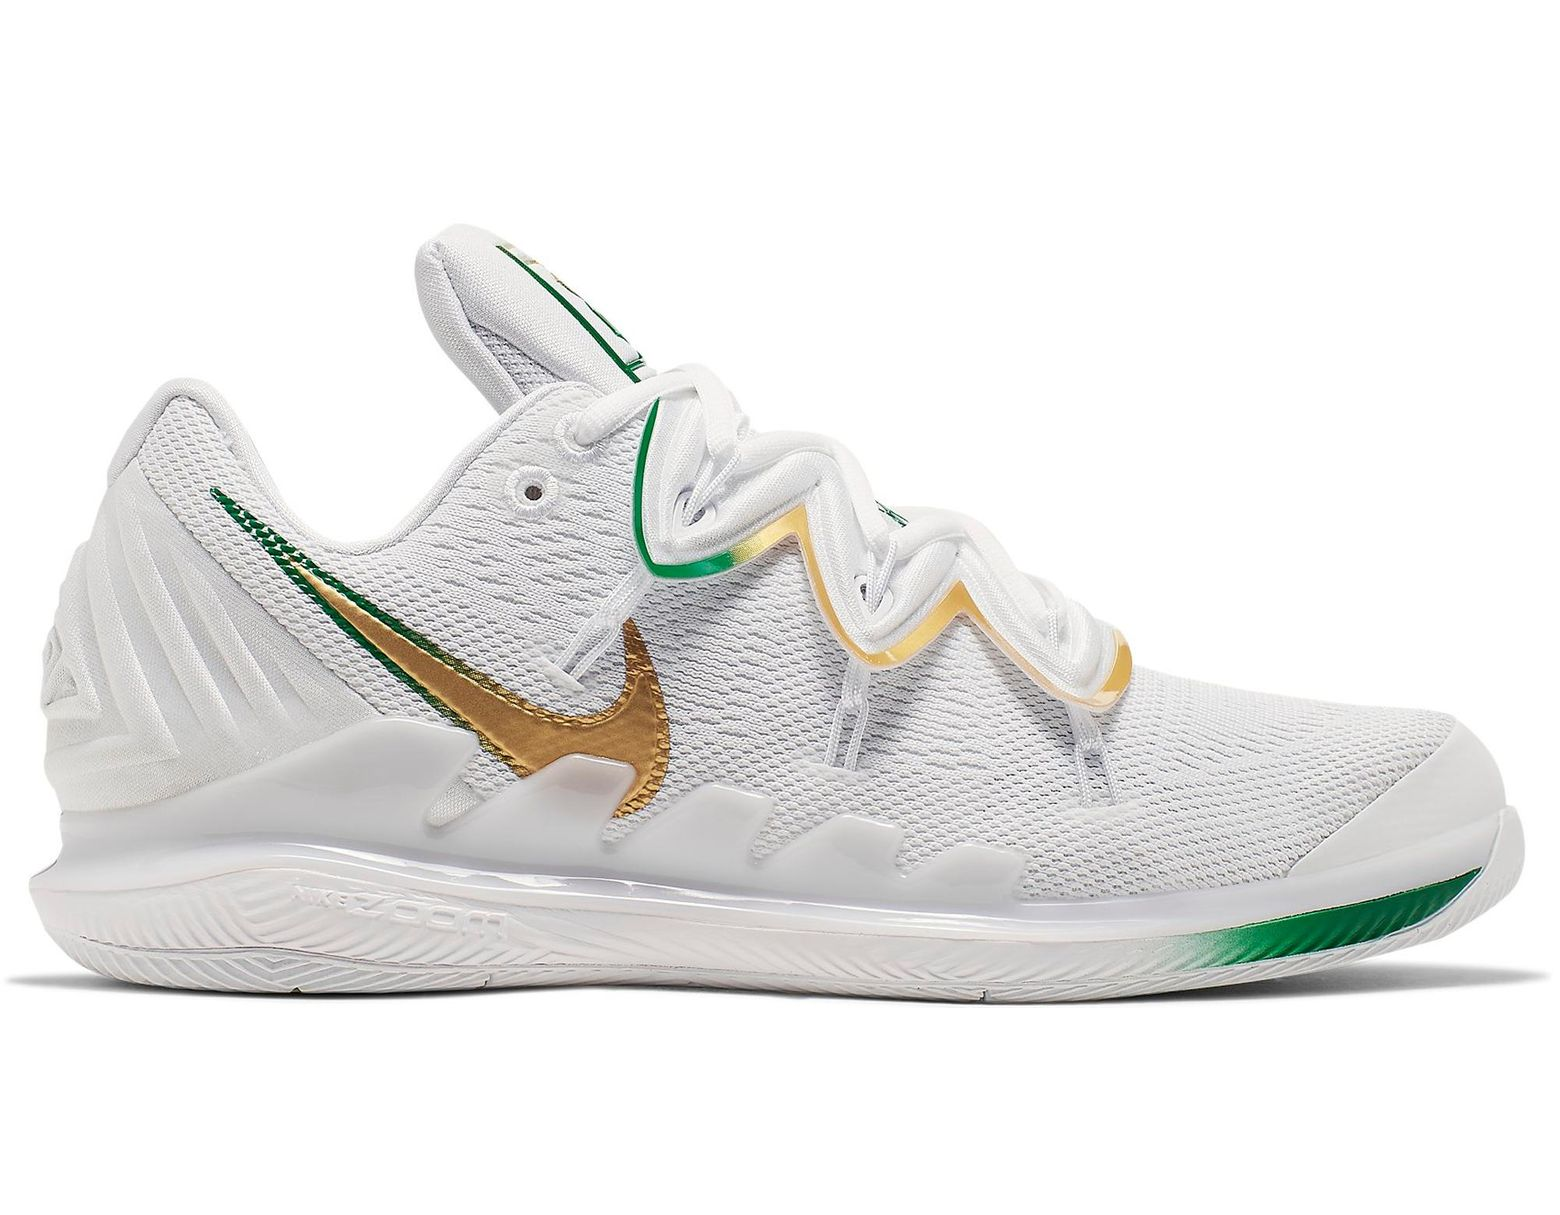 uk availability c5fd6 bea09 Men's Metallic Air Zoom Vapor X Kyrie Clover